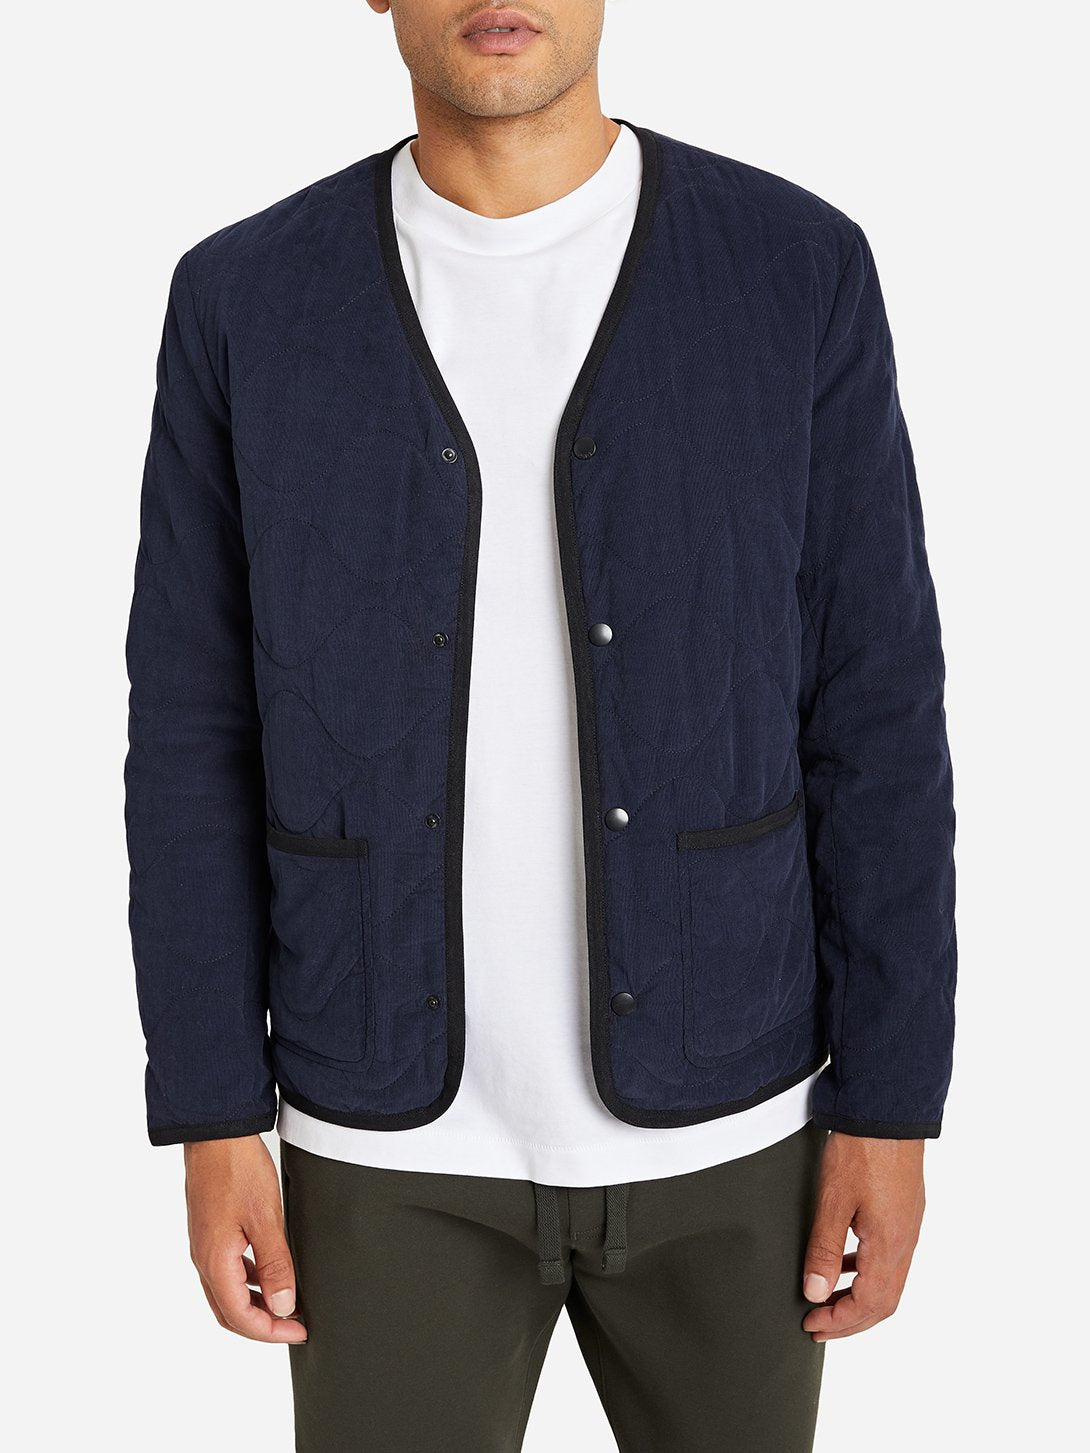 NAVY jacket for men crescent jacket ONS clothing